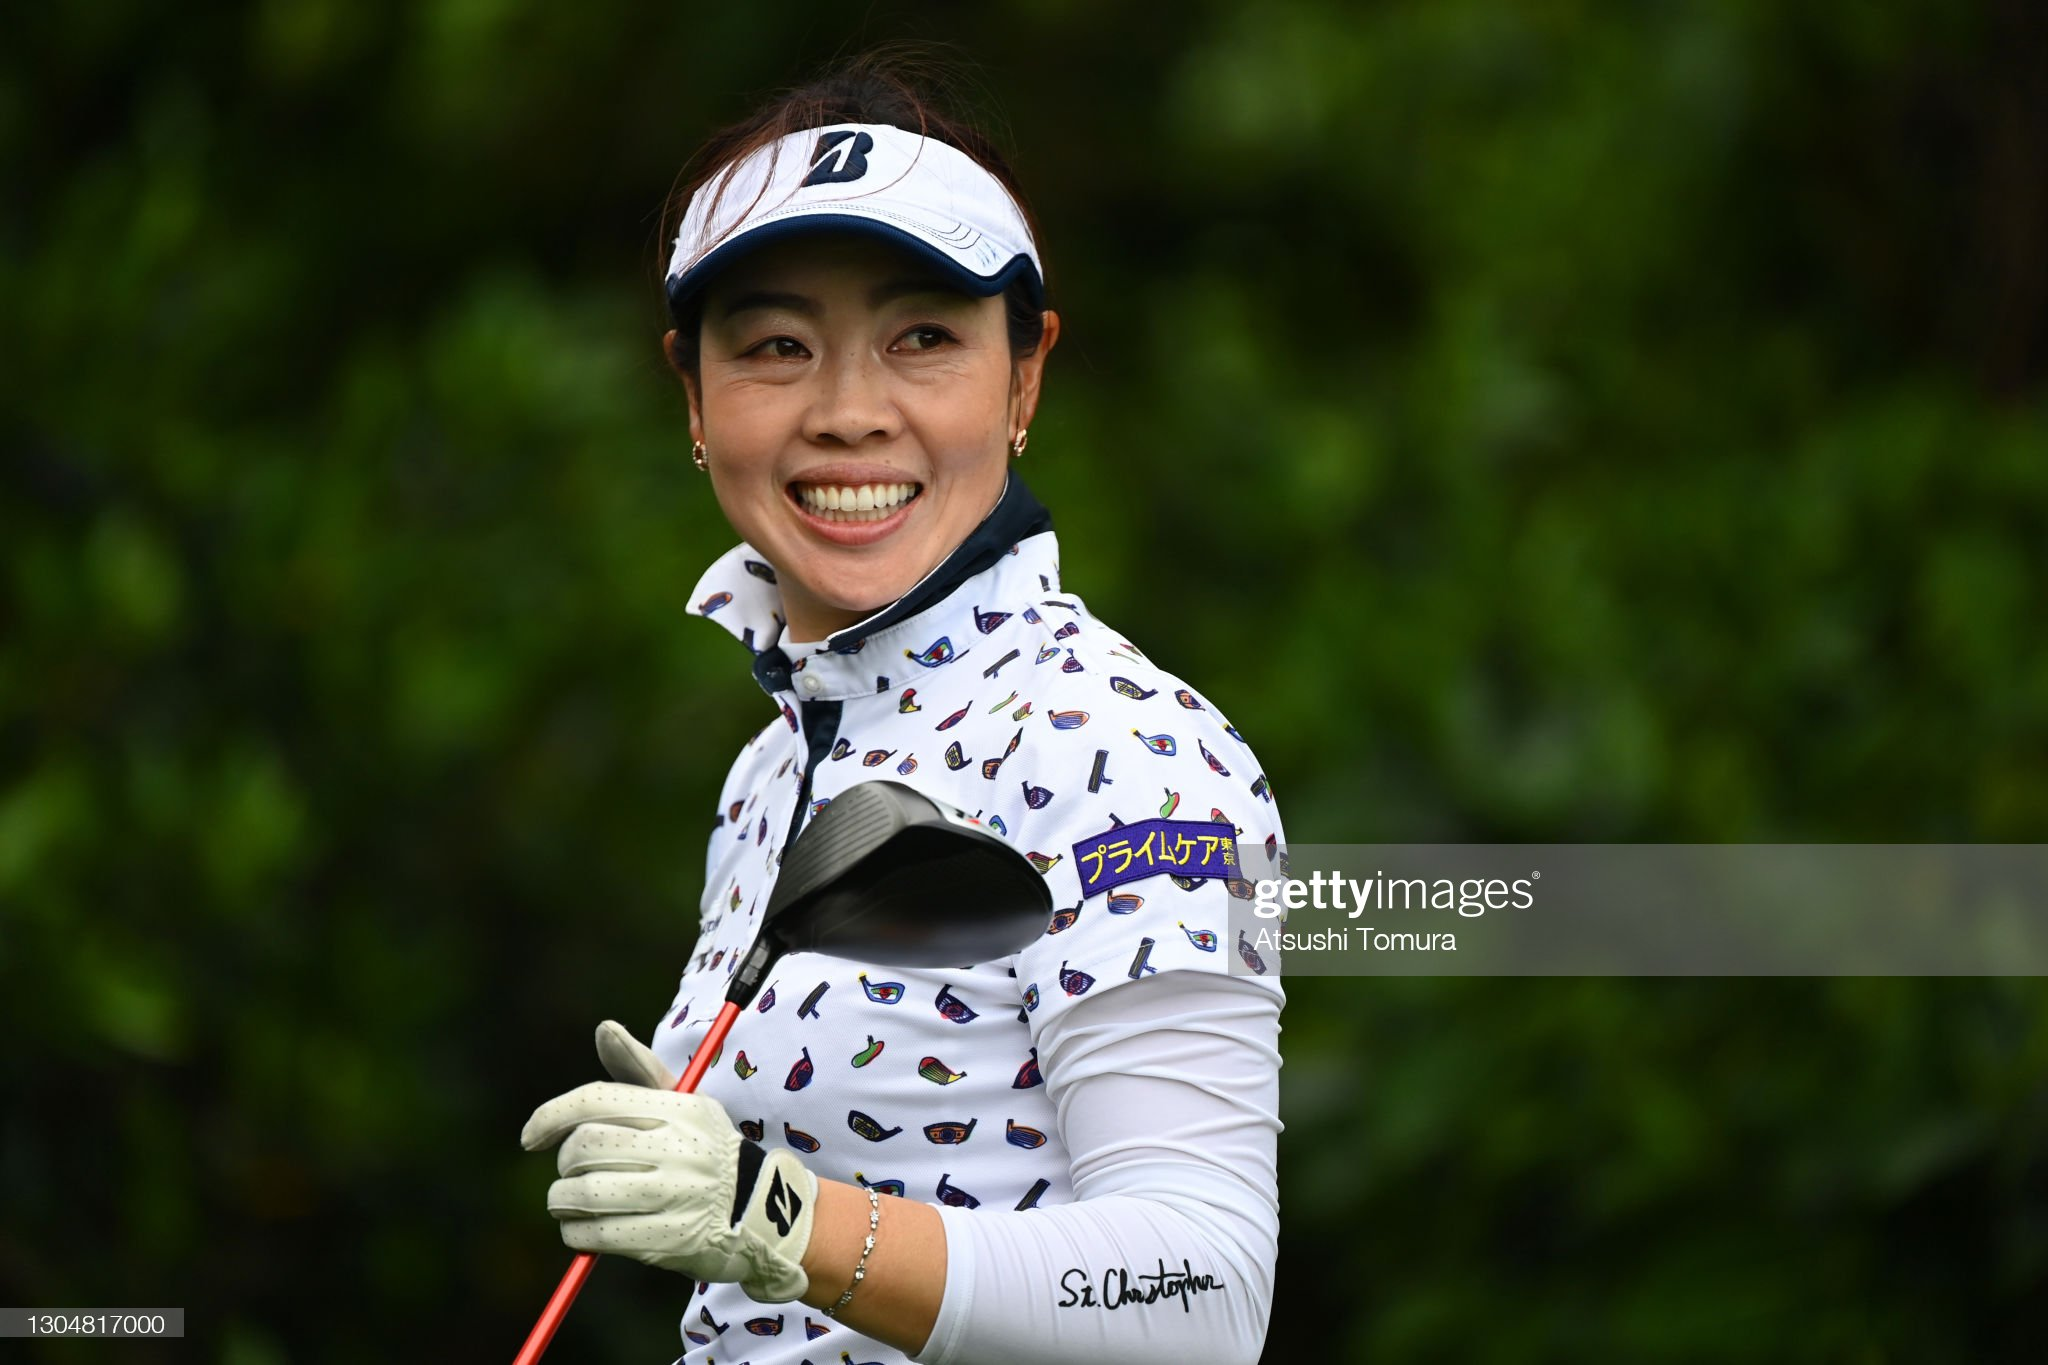 https://media.gettyimages.com/photos/yukari-nishiyama-of-japan-is-seen-on-the-5th-tee-during-the-practice-picture-id1304817000?s=2048x2048